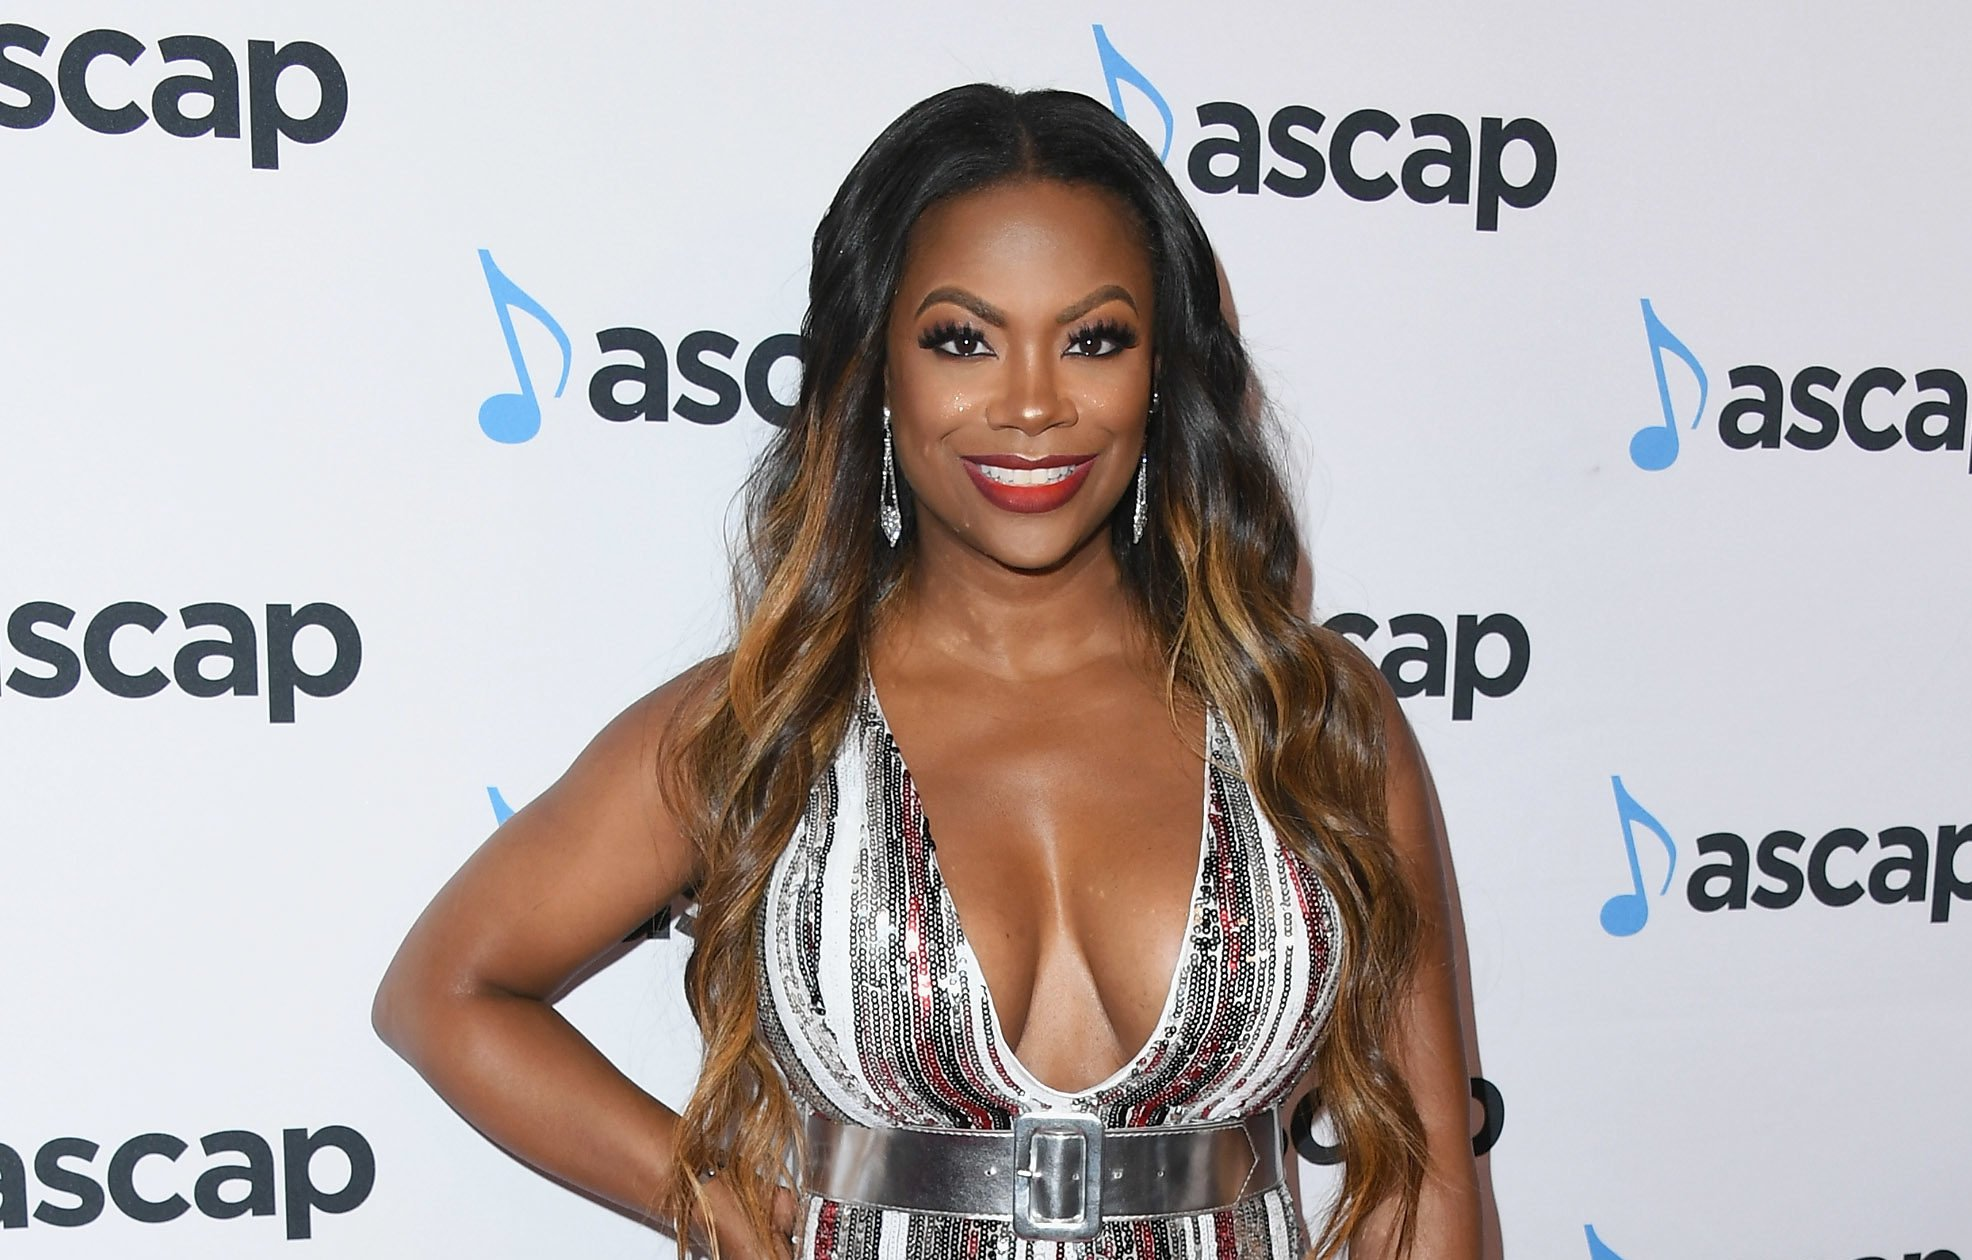 Kandi Burruss Flaunts Some Nice Hoodies From Her Boutique, And Fans Are In Awe